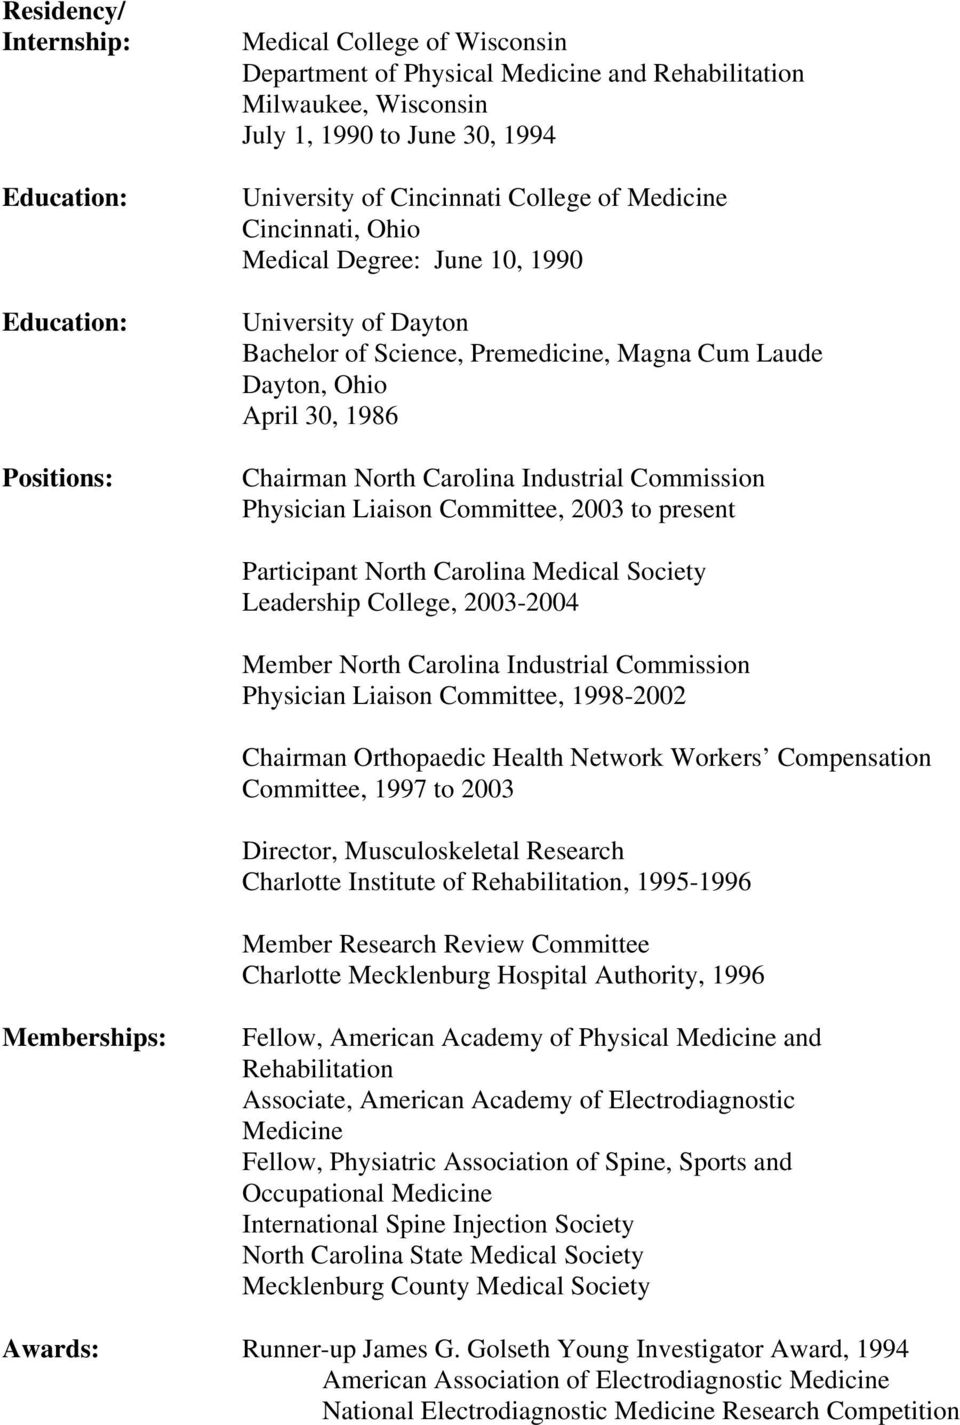 Carolina Industrial Commission Physician Liaison Committee, 2003 to present Participant North Carolina Medical Society Leadership College, 2003-2004 Member North Carolina Industrial Commission